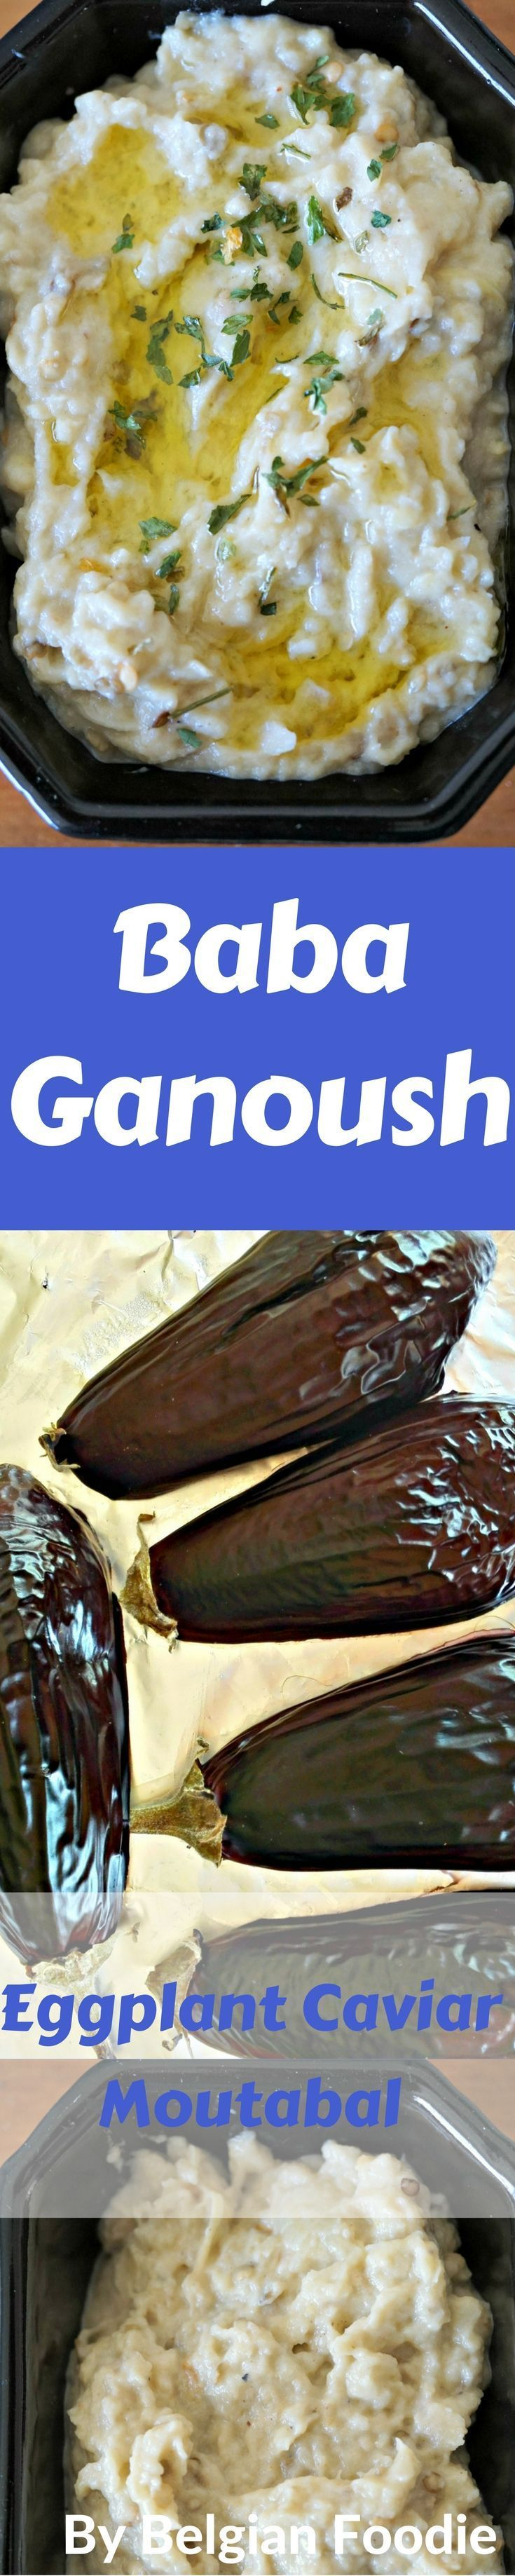 This Baba Ganoush recipe is Easy, Quick and VEGAN!!!  It's super YUMMY too!